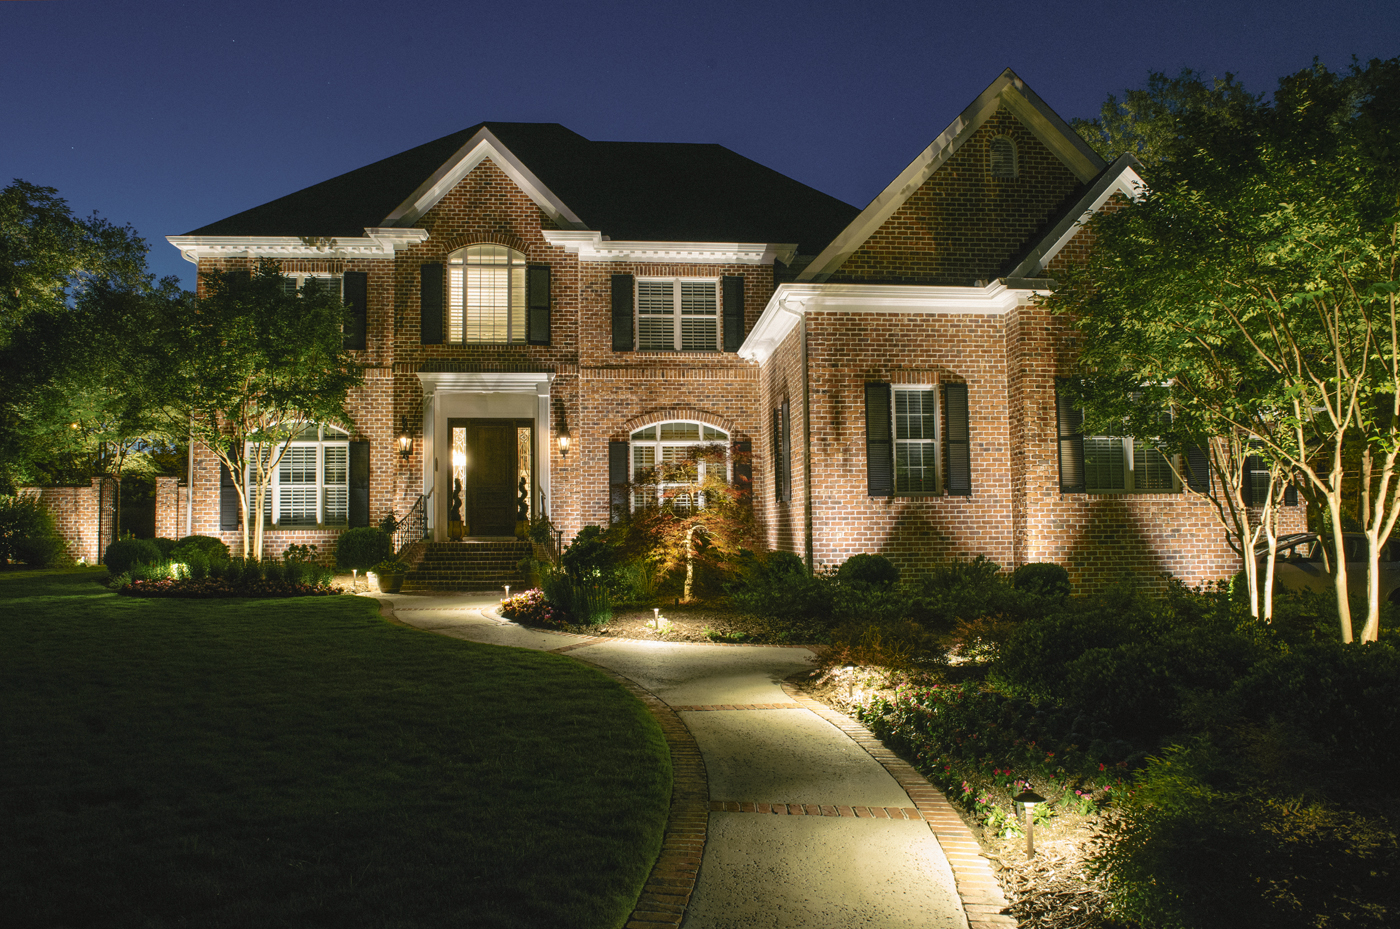 lighting for homes. Architectural Lighting Highlights Your Home\u0027s Exterior And Brings Out Its Unique Textures Details. Placed Around Entryways Arches, Columns Peaks For Homes